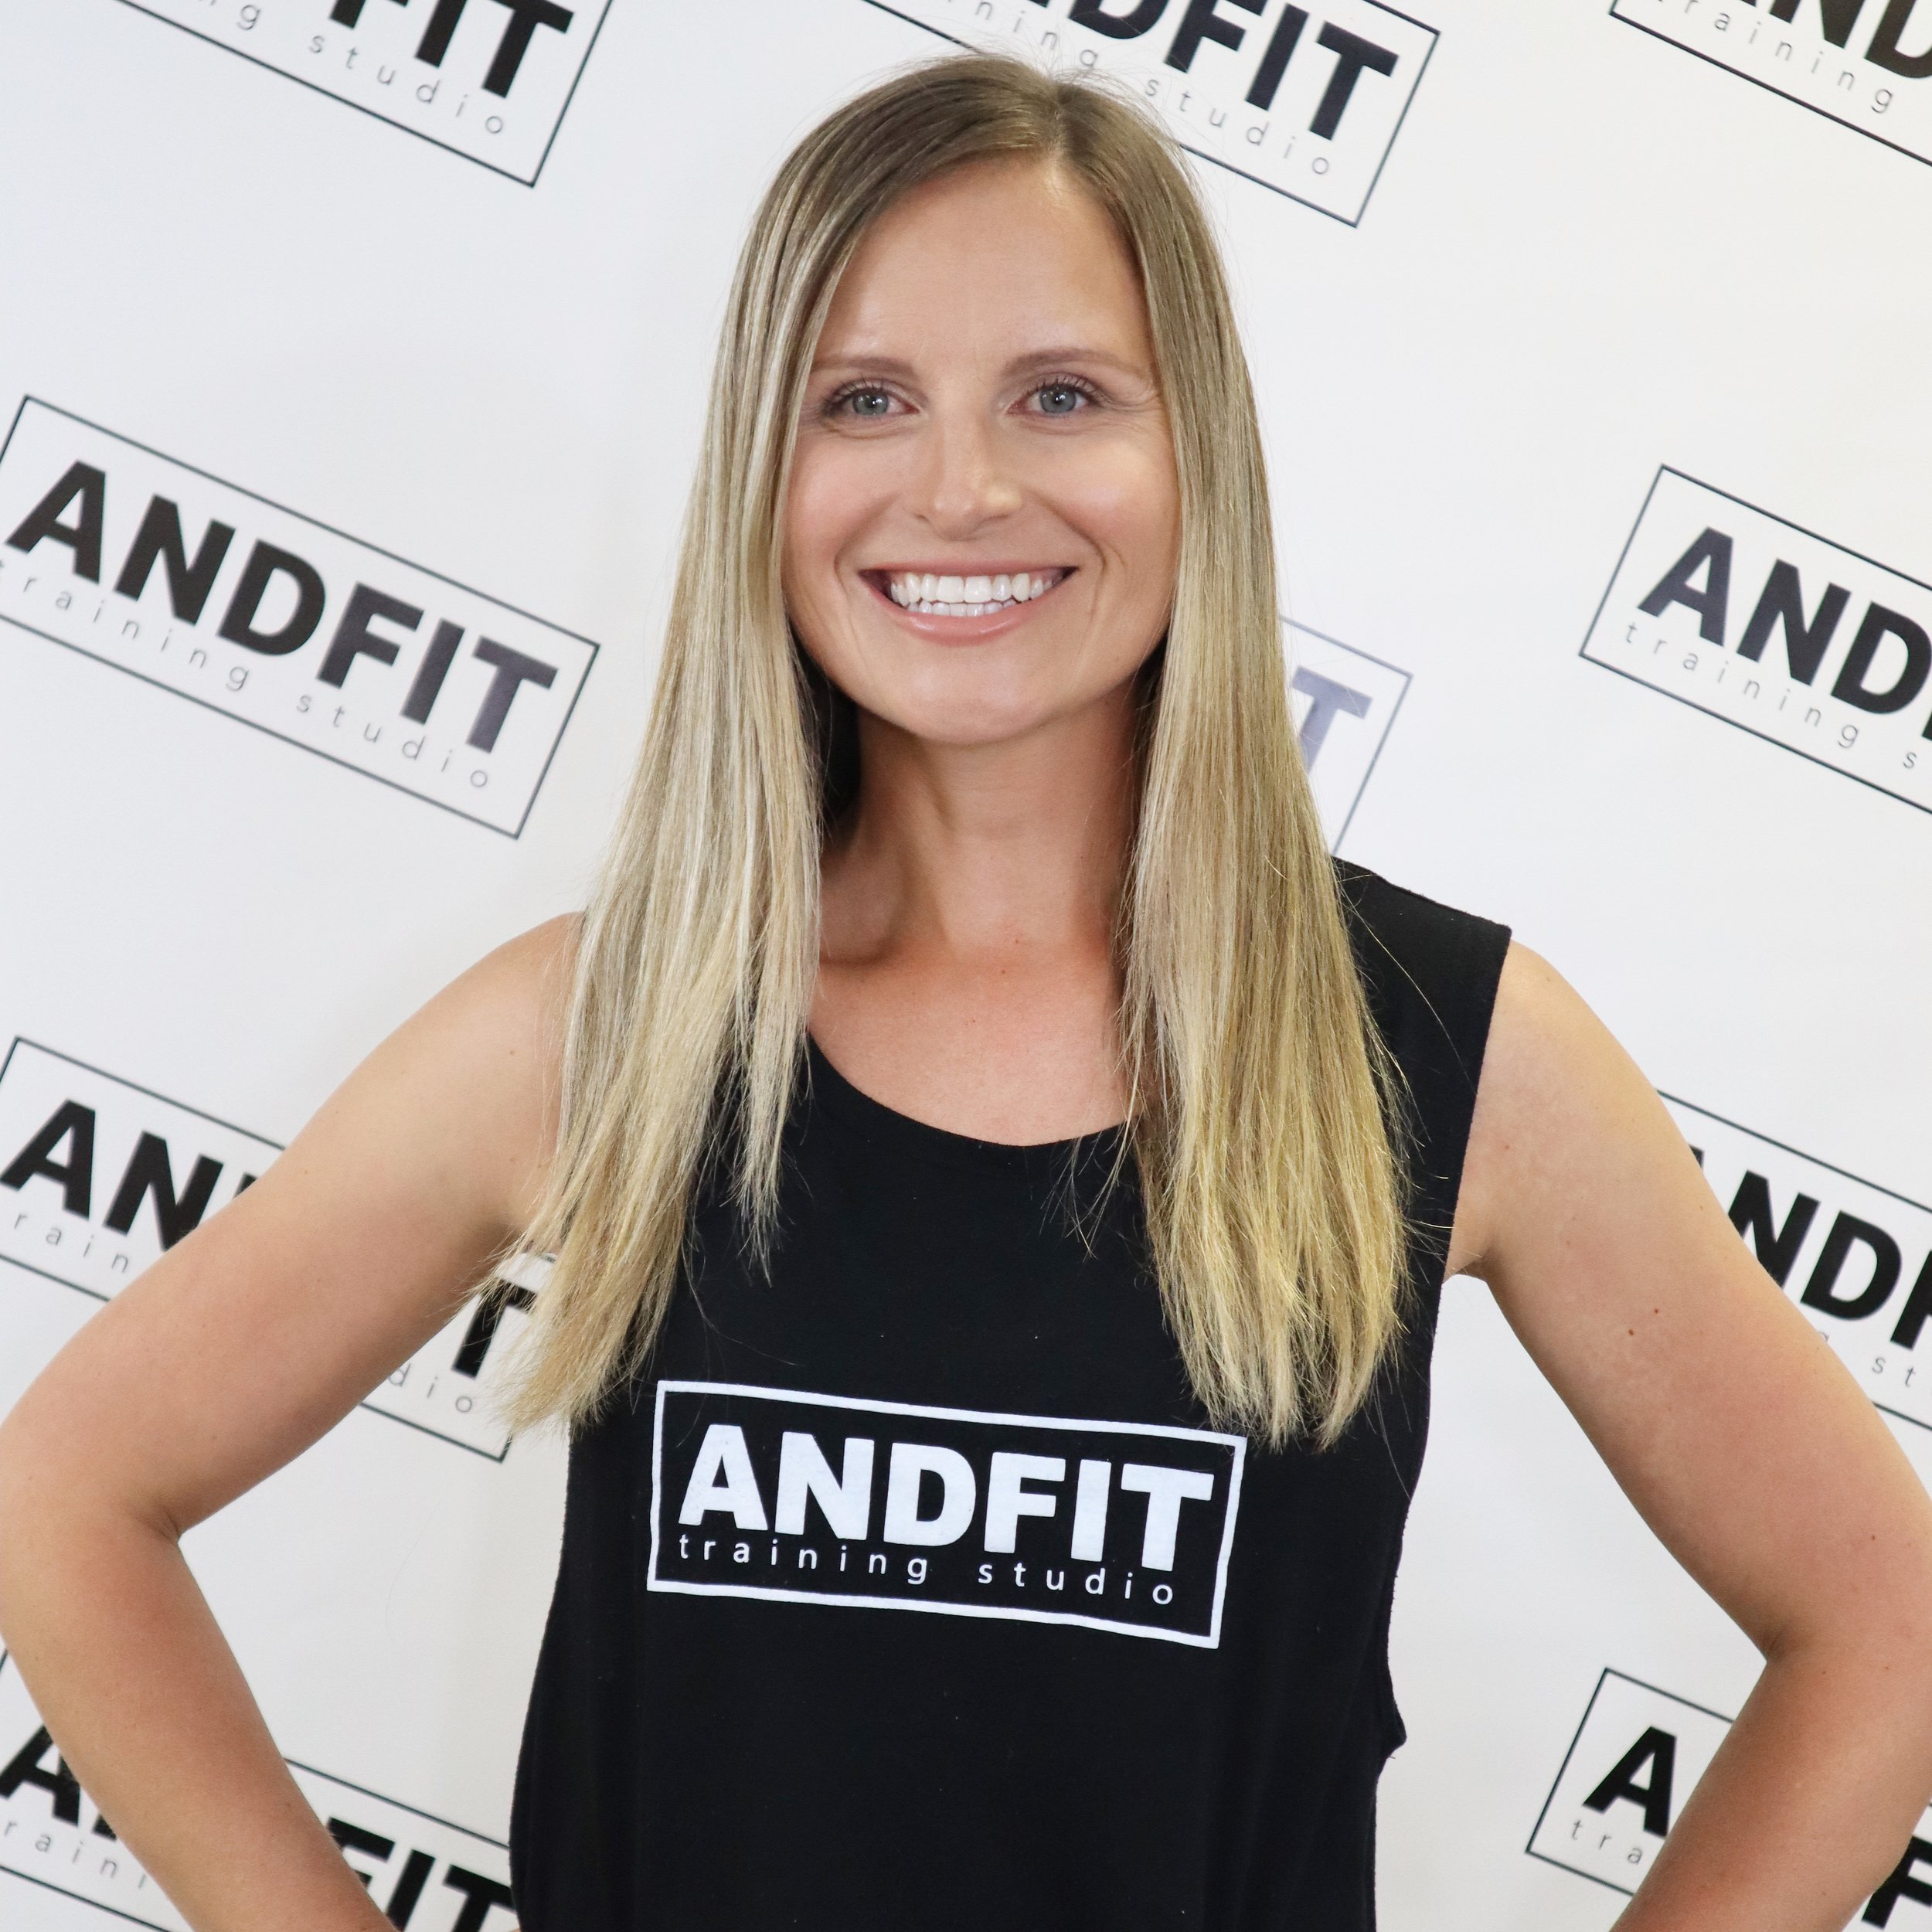 Maxine Williamson, RDH, FIS ANDFIT Fitness Instructor